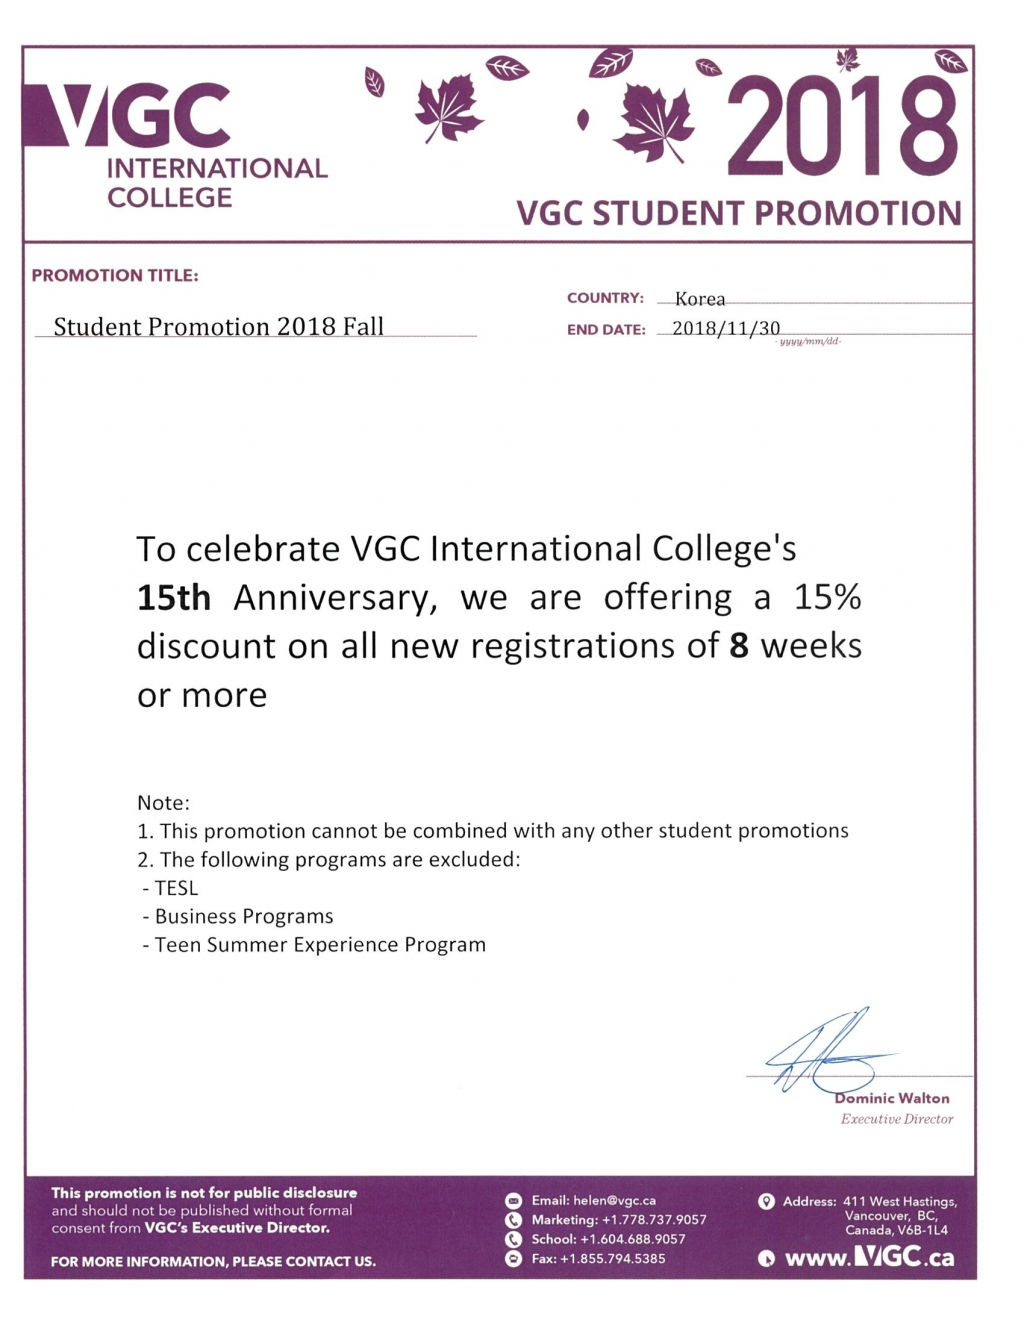 VGC FALL PROMOTION_STUDENT2018-08-31-132749 (2).jpg